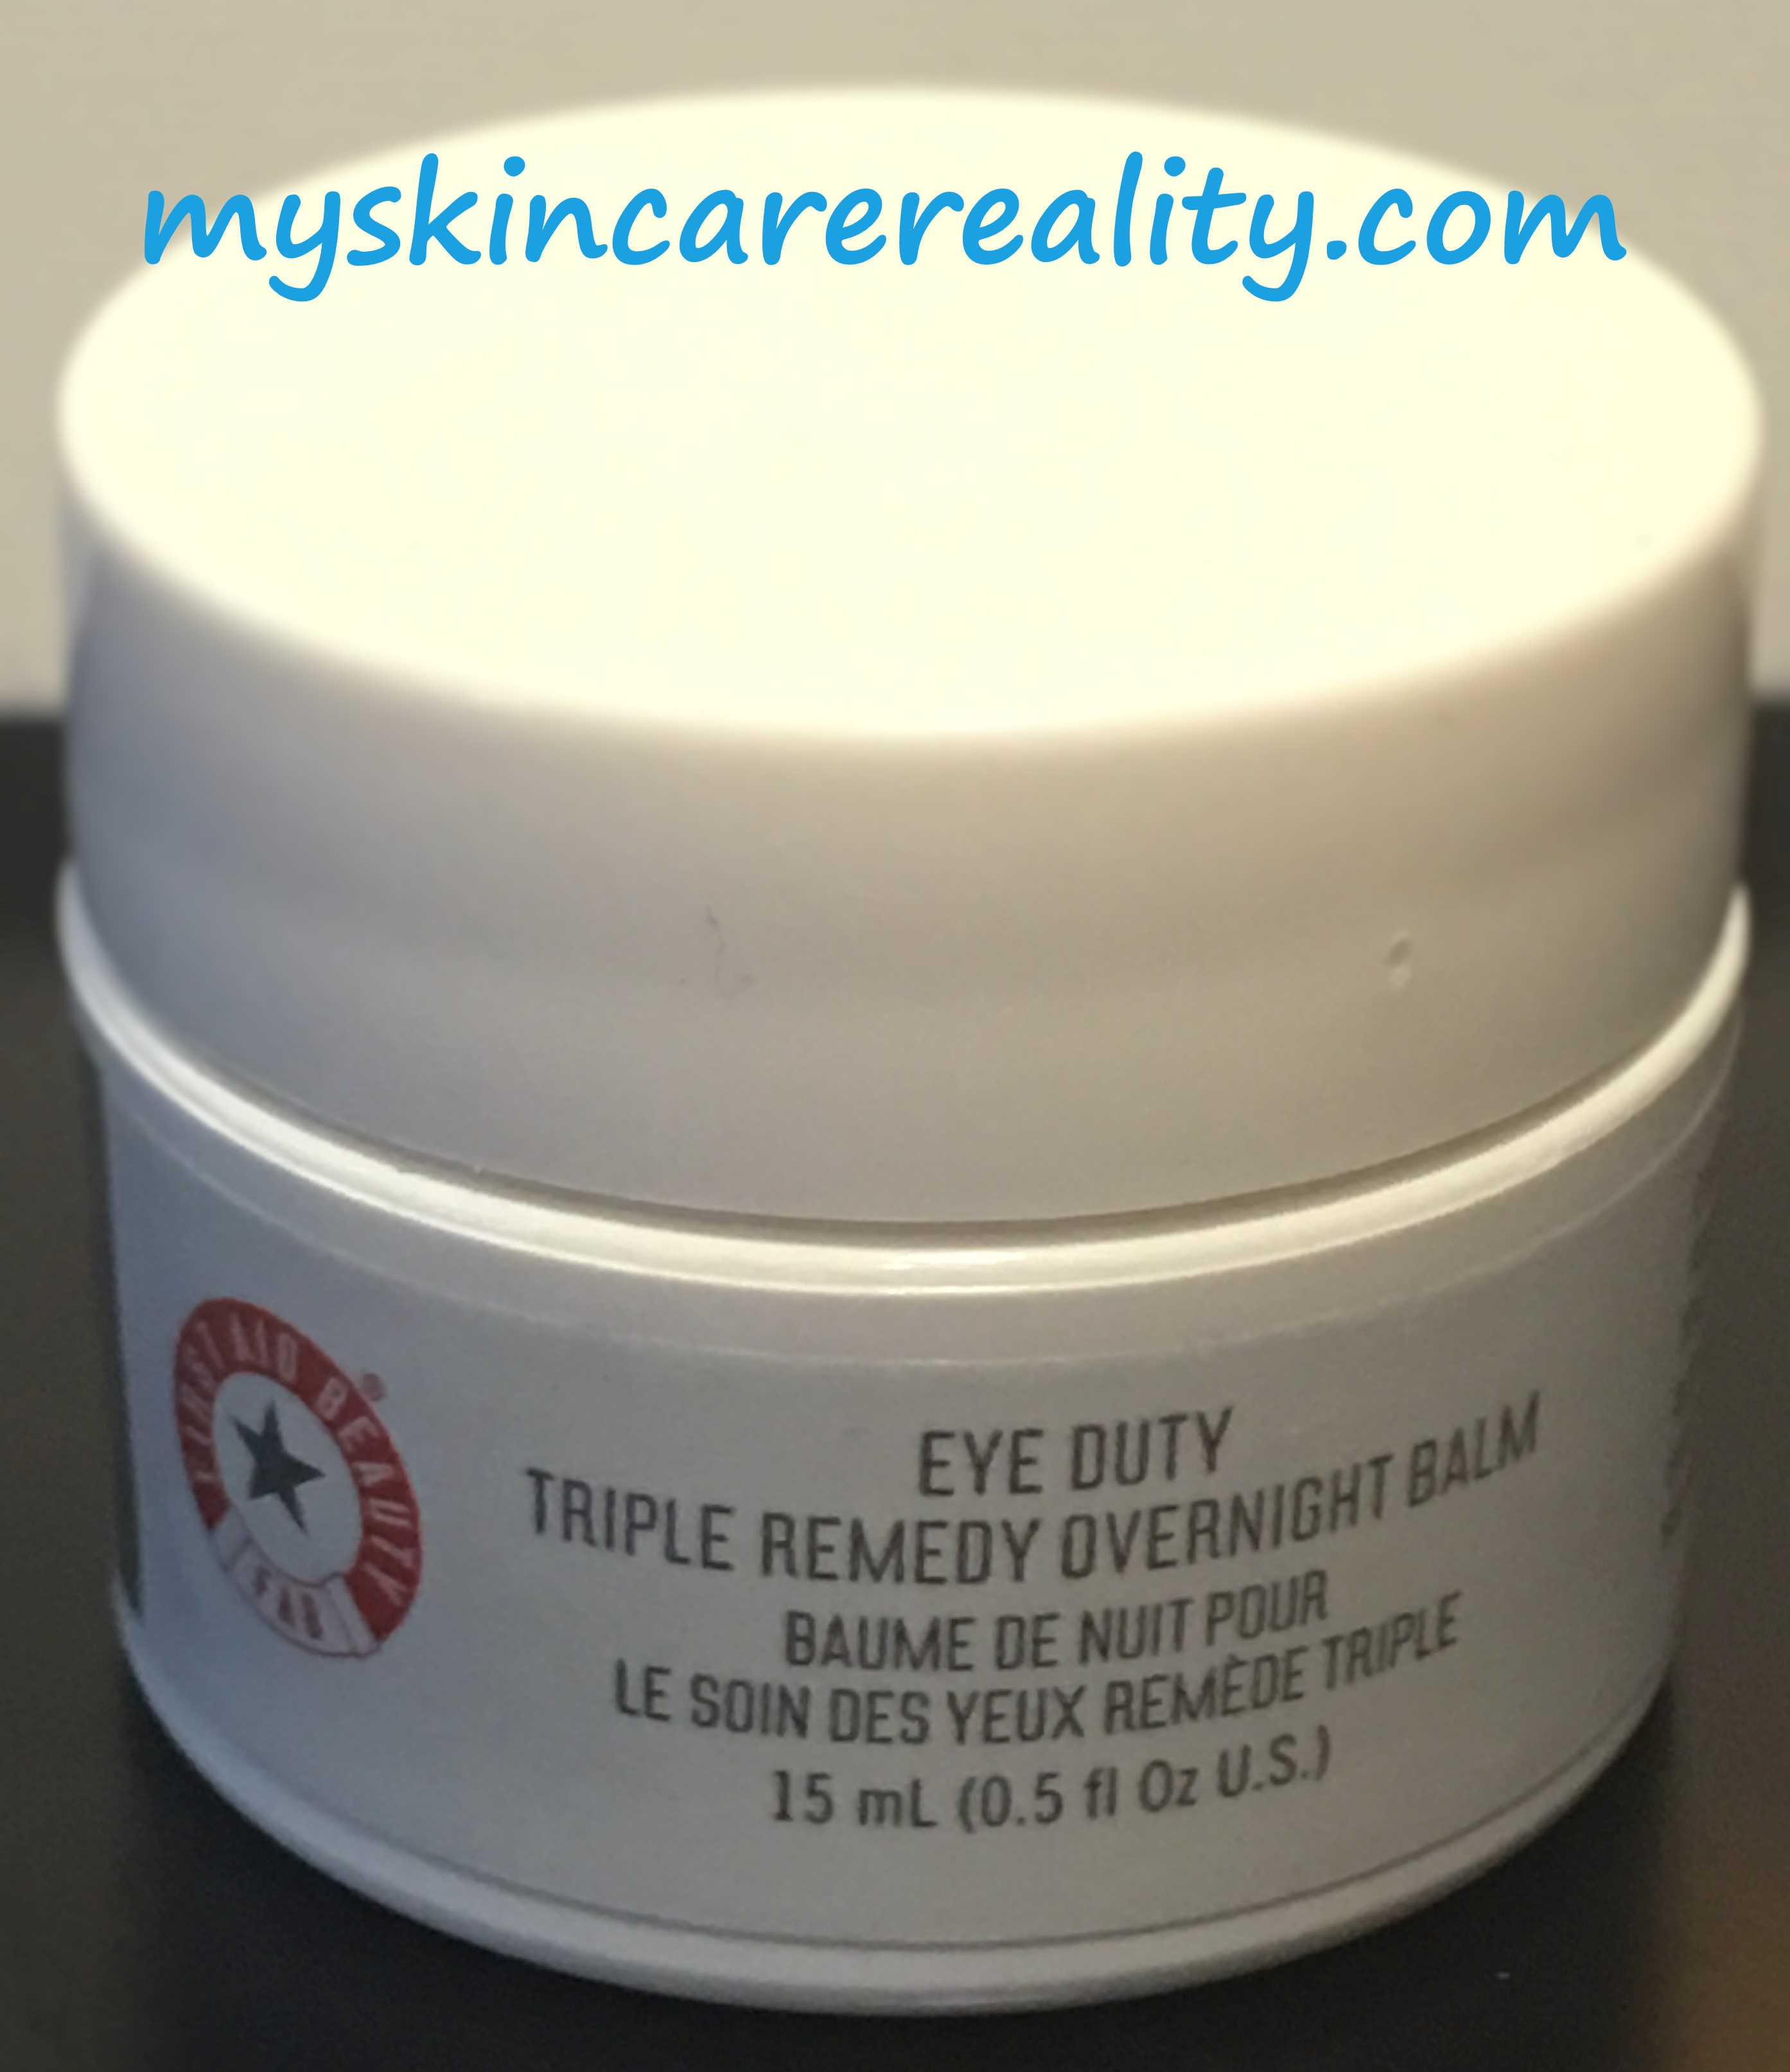 First Aid – Eye Duty Triple Remedy Overnight Balm Review